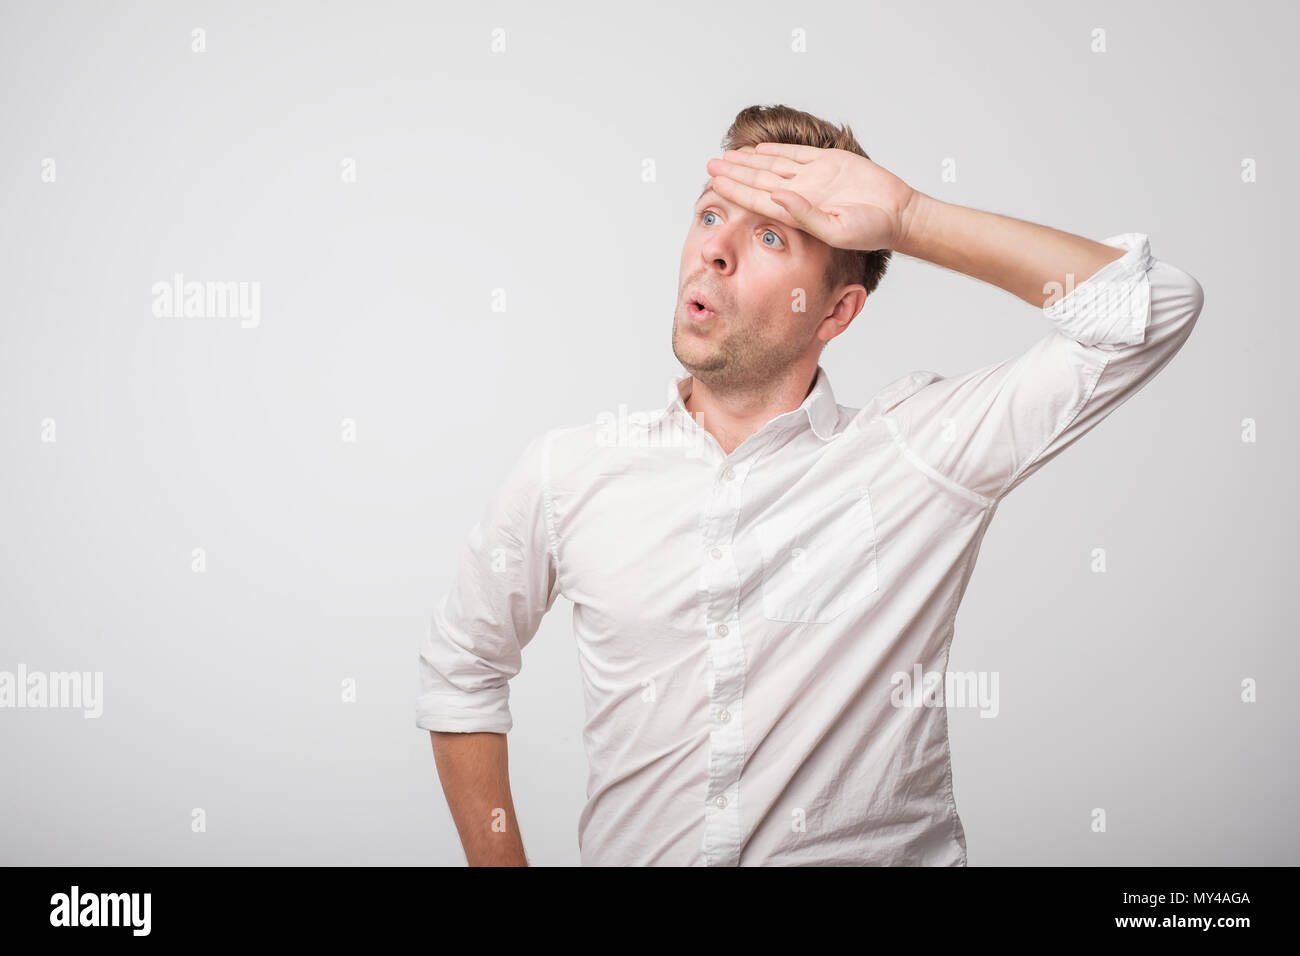 Tired caucasian man in white shirt sweating having fever headache - Stock Image